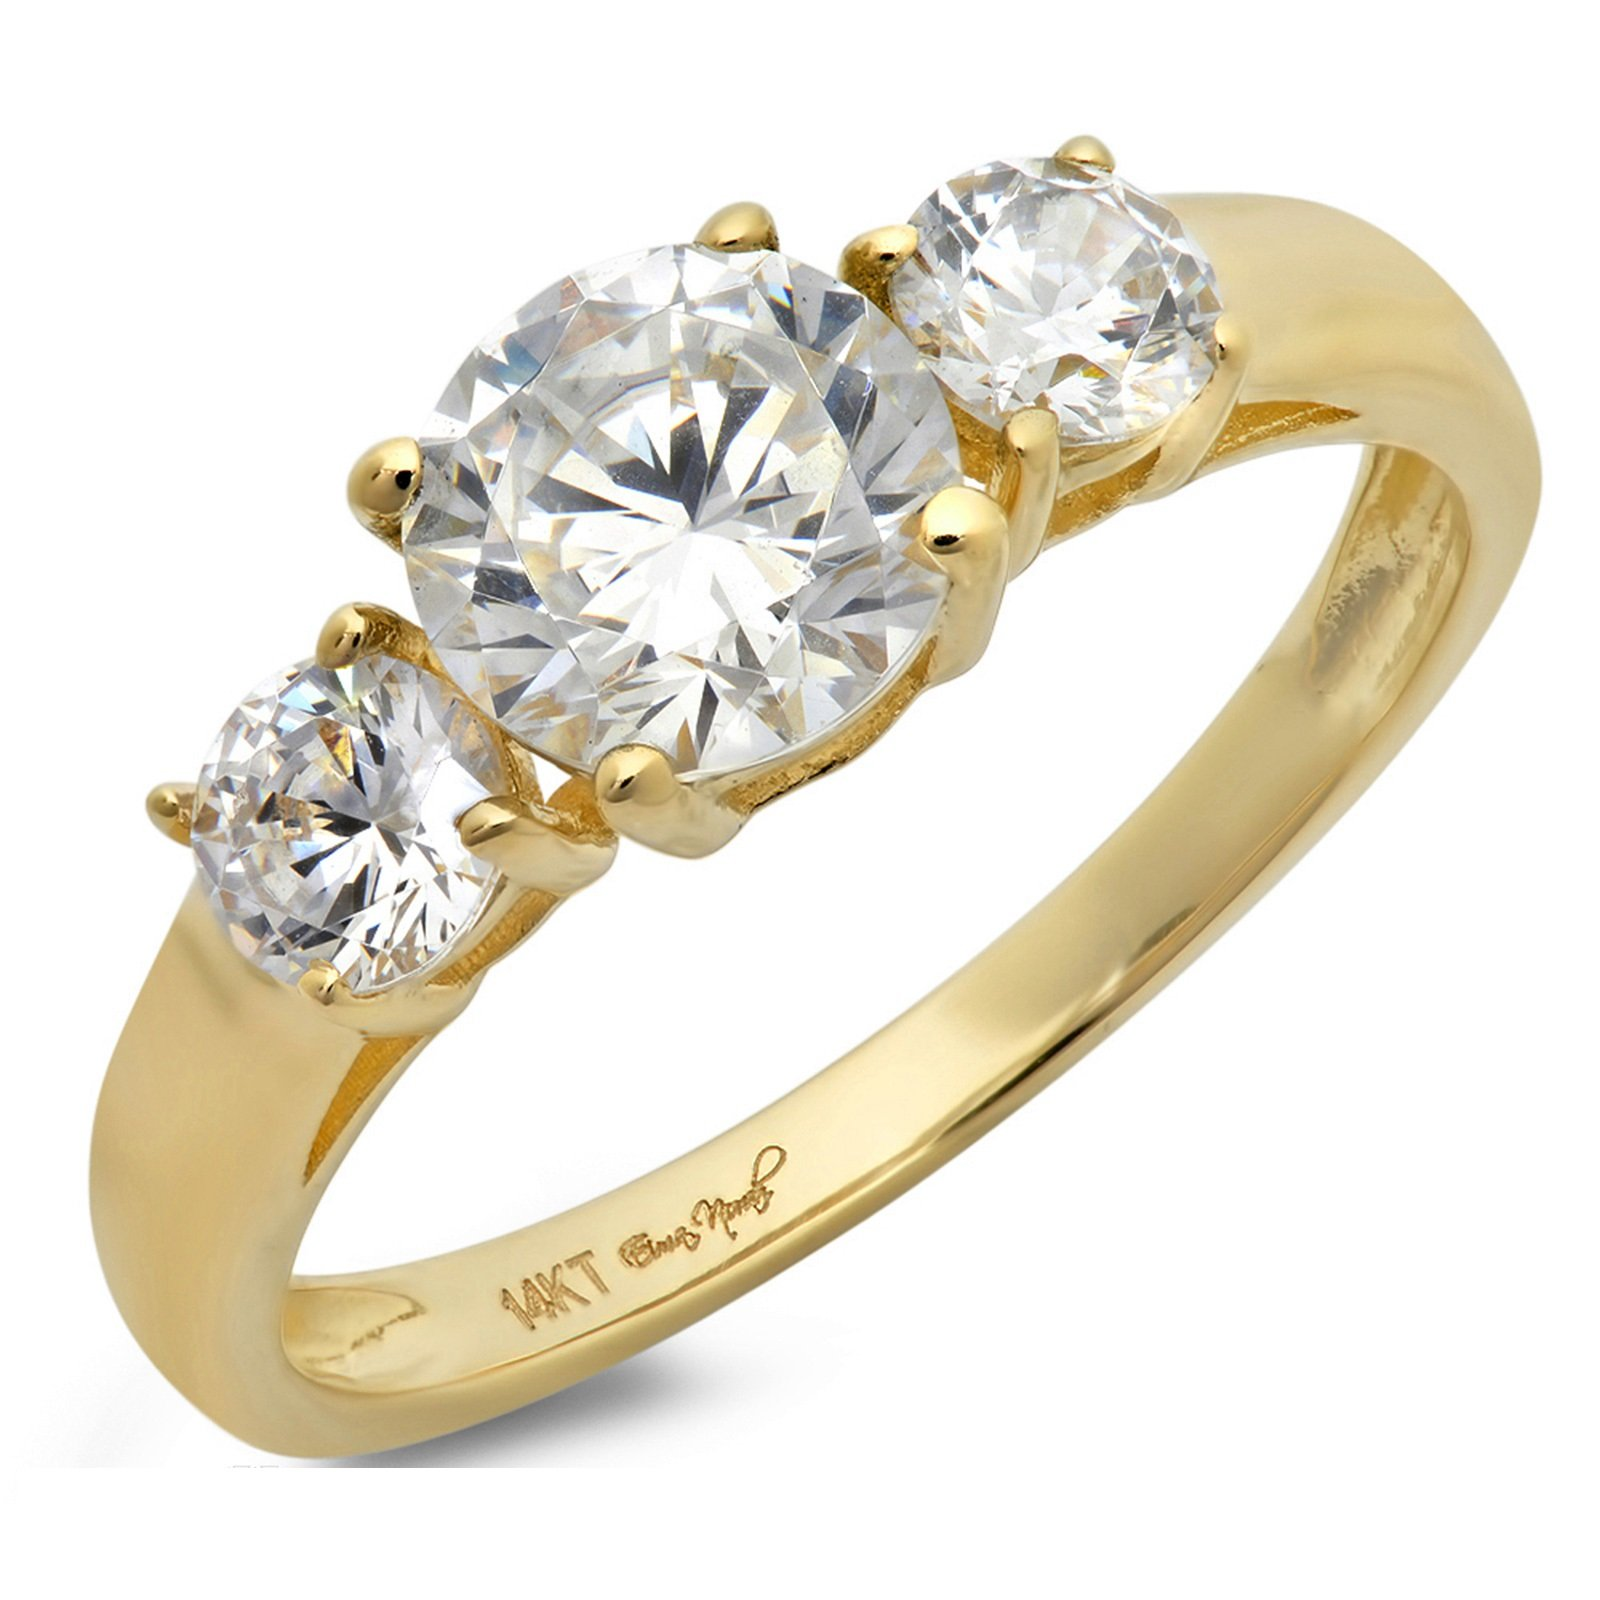 Clara Pucci 1.50 CT Round Cut Simulated Diamond CZ Solitaire Three Stone Ring 14K Yellow Gold Engagement Wedding Band, Size 6.25 by Clara Pucci